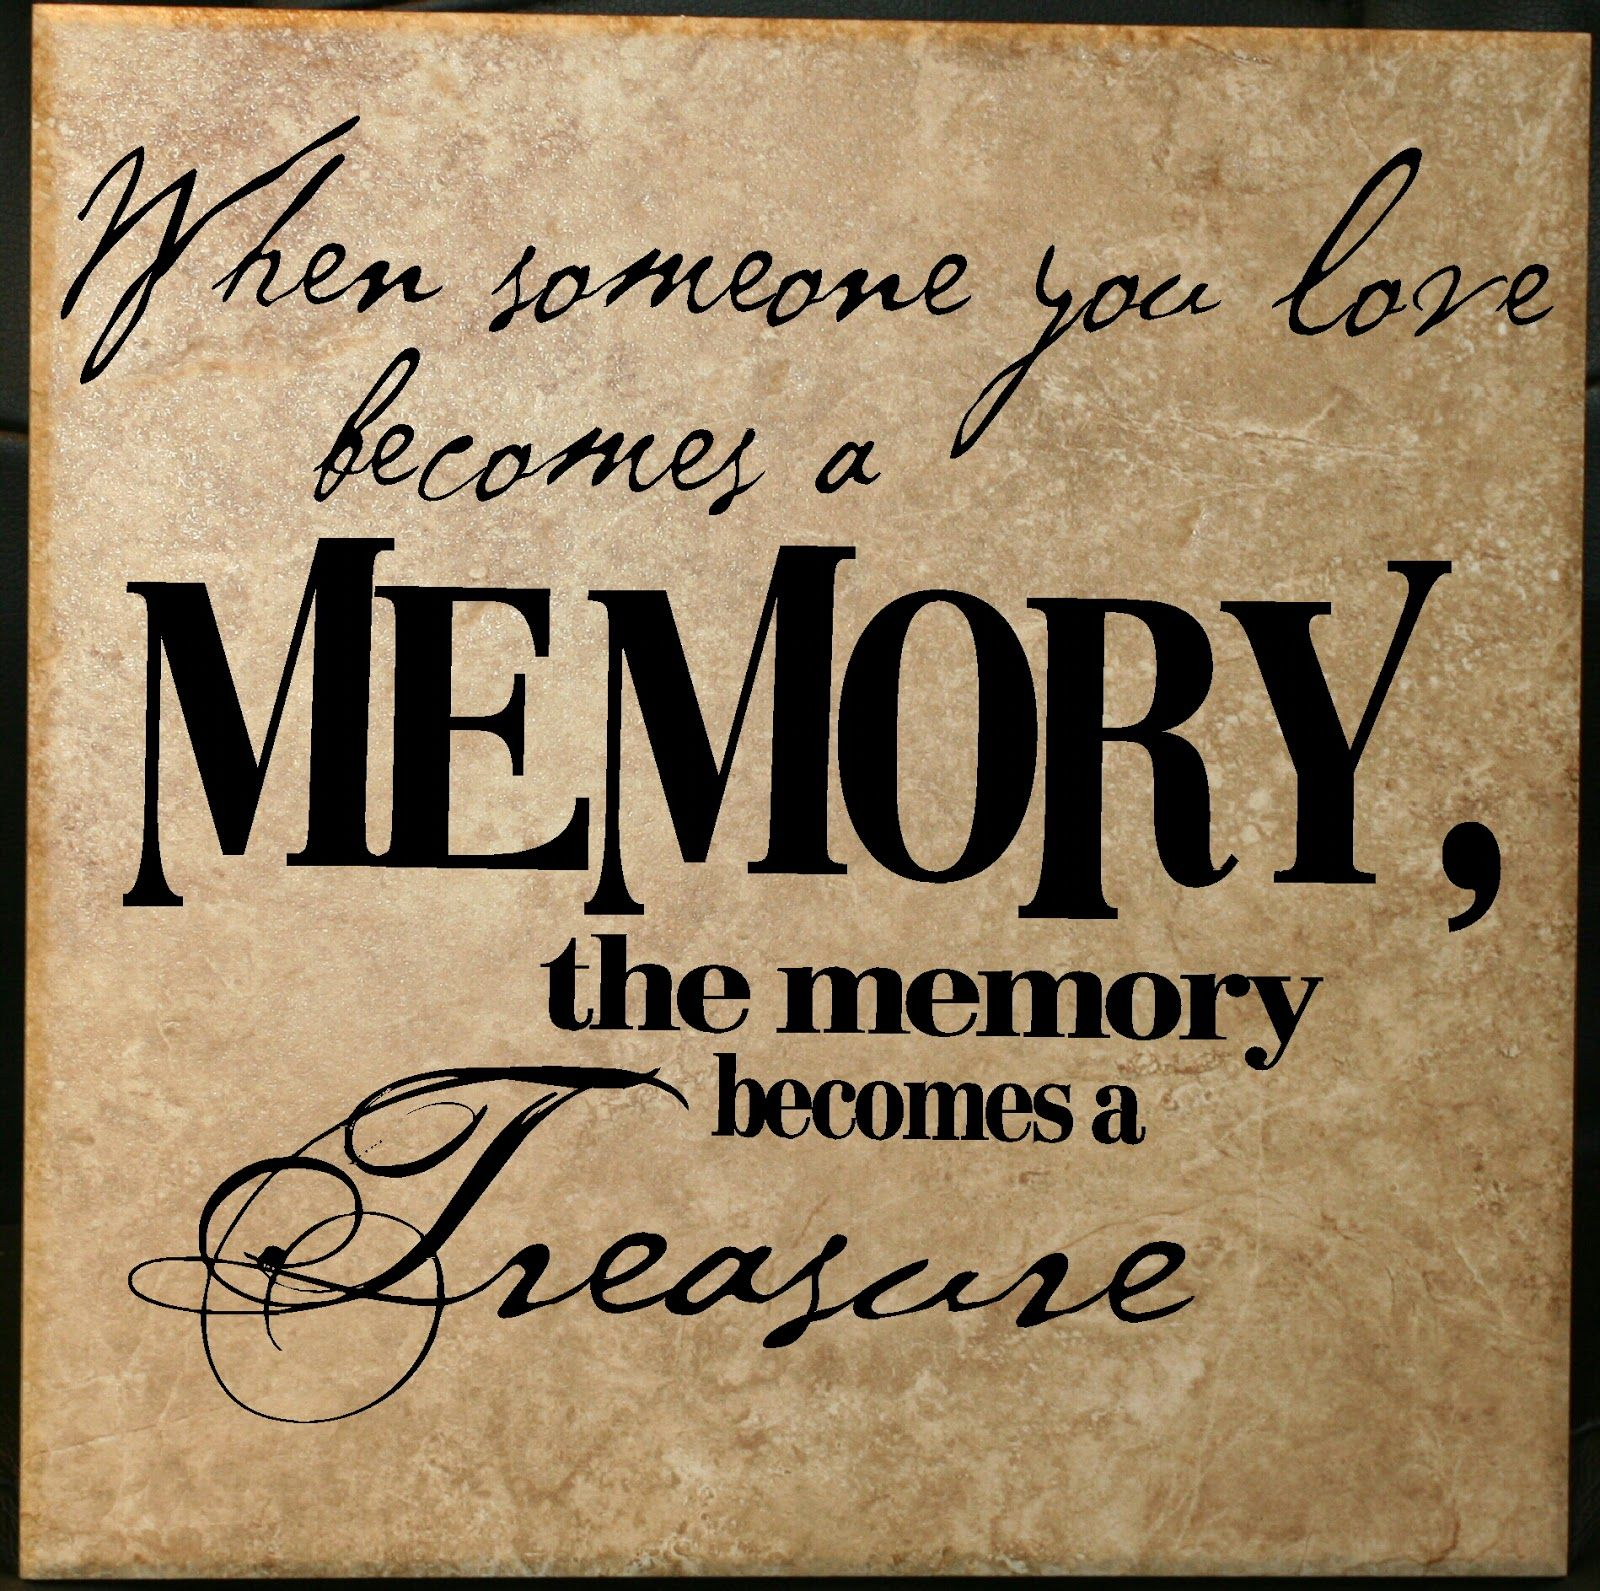 Quotes For Memory: The Memory Becomes A Treasure